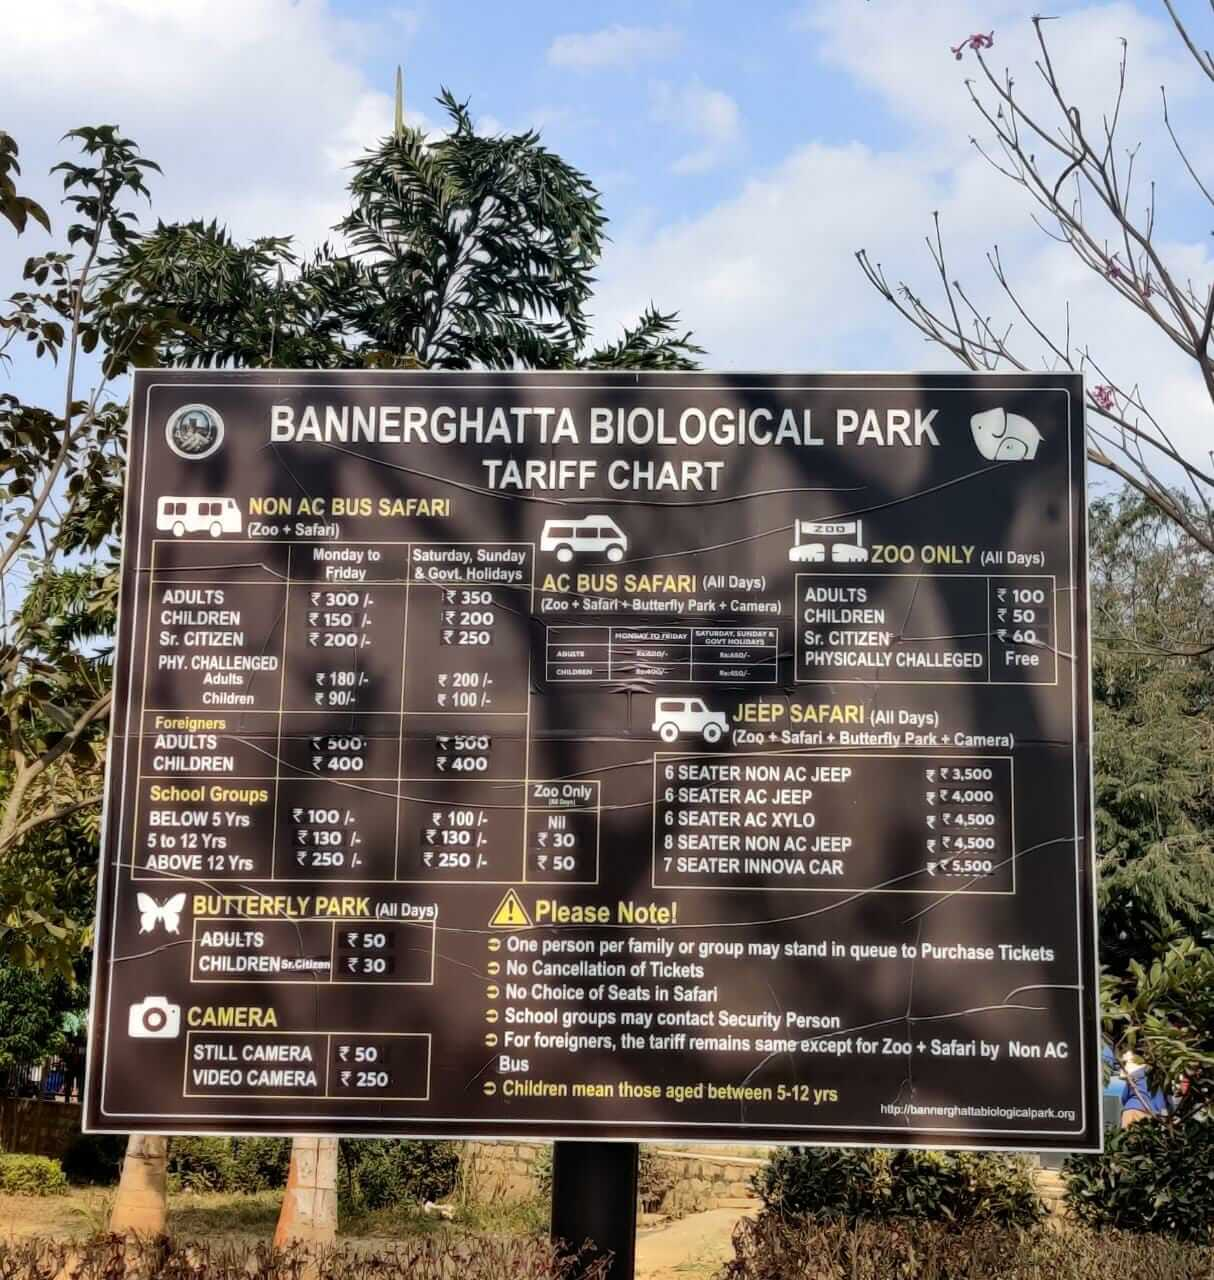 Bannerghatta National Park Safari Ticket Price 2020 Updated, Zoo Entry Fee, banergata forest Parking Charges